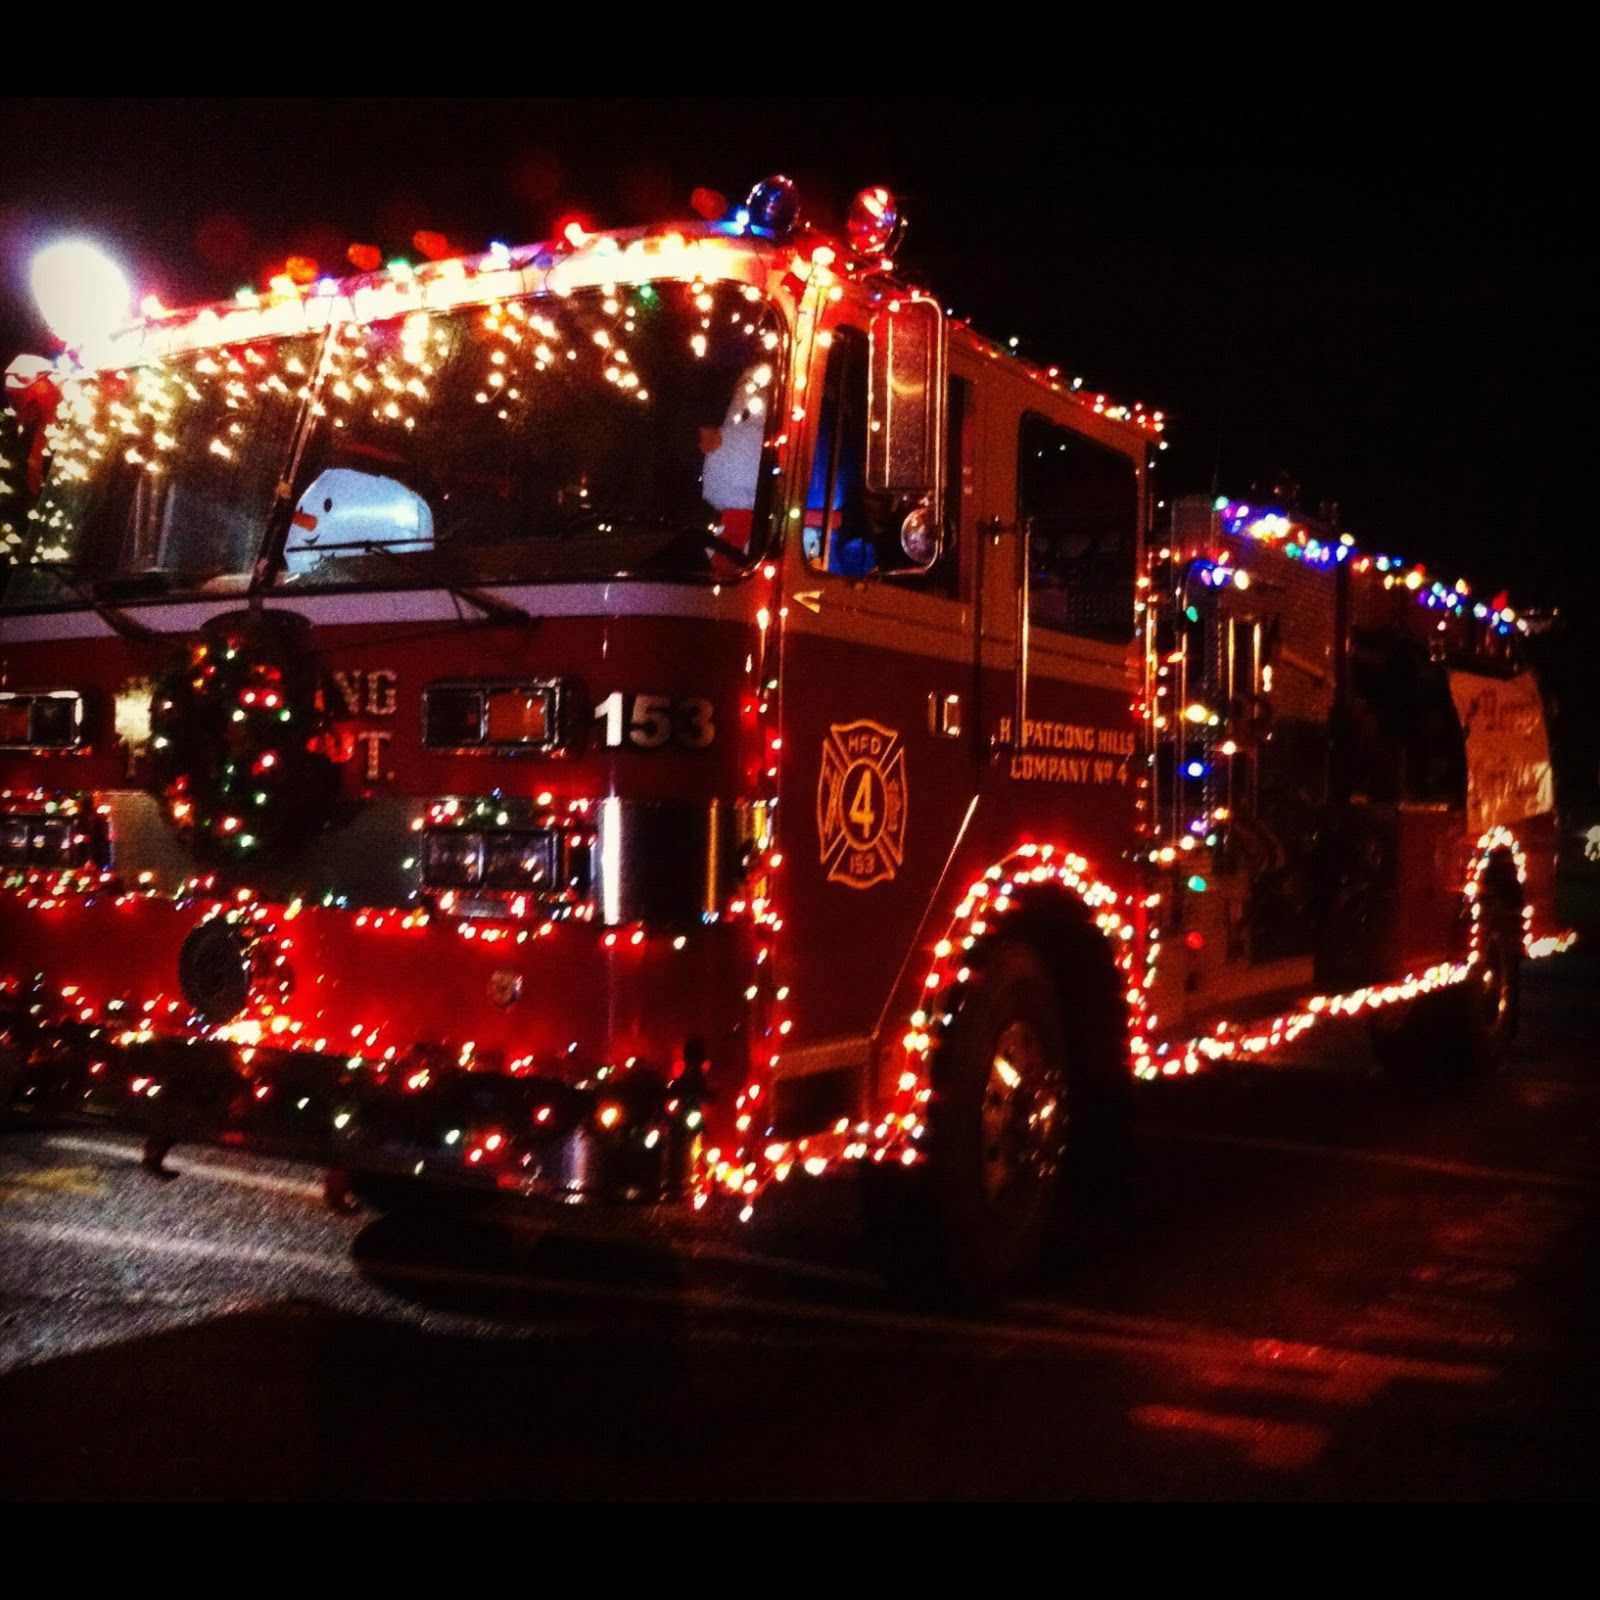 Christmas Lights Firetruck The Town Decorated Fire Truck With So Festive